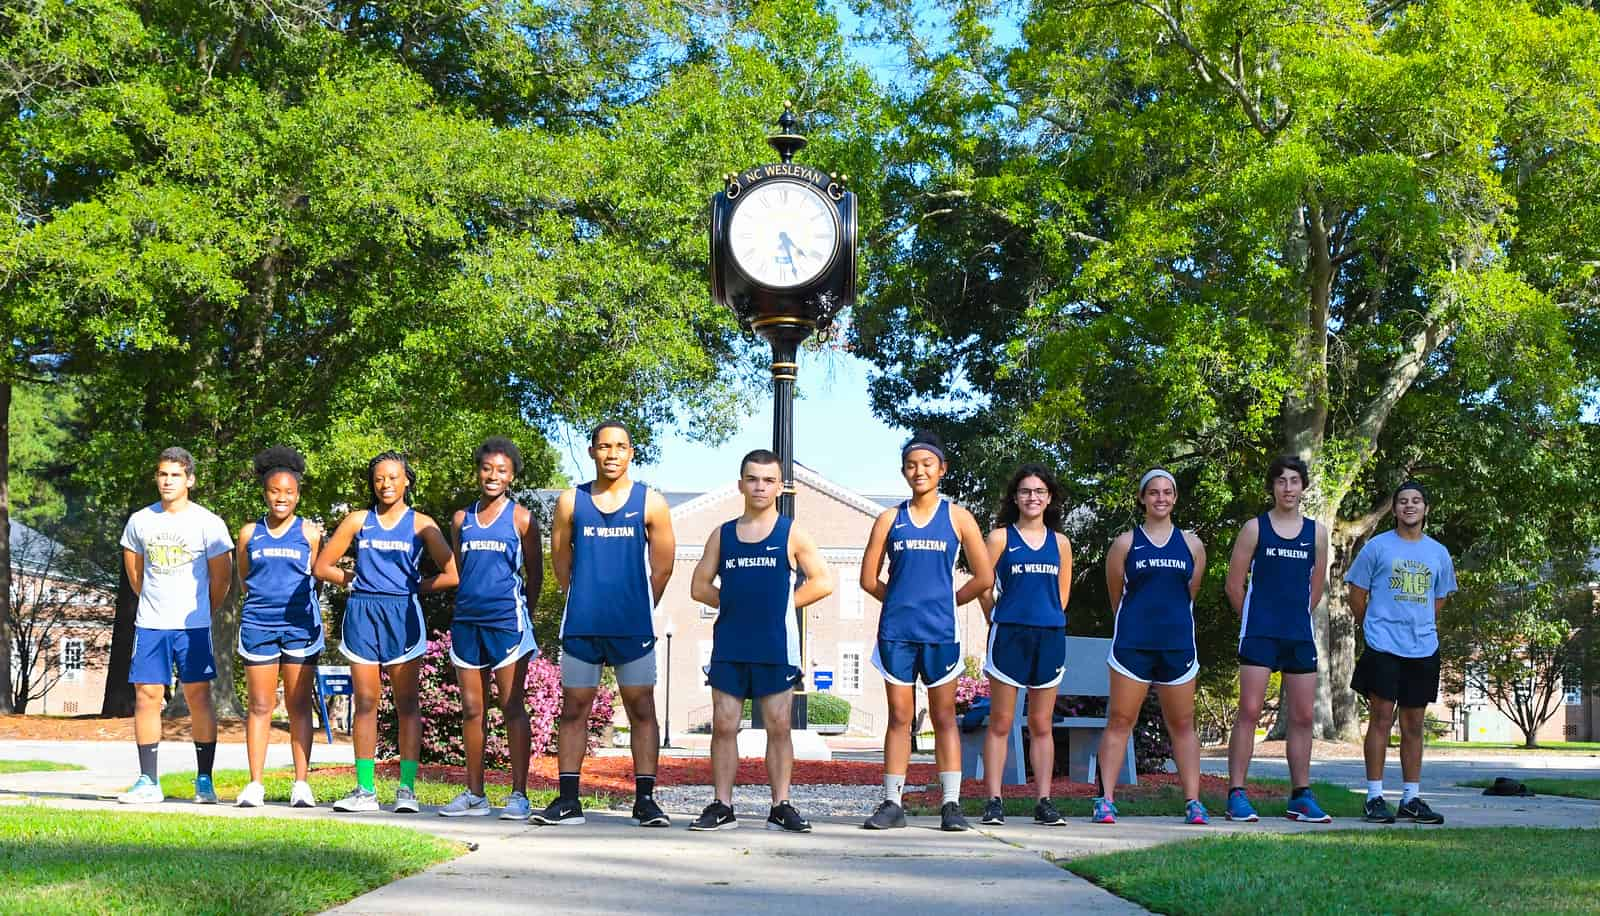 Team photo of the cross country team in royal blue uniforms